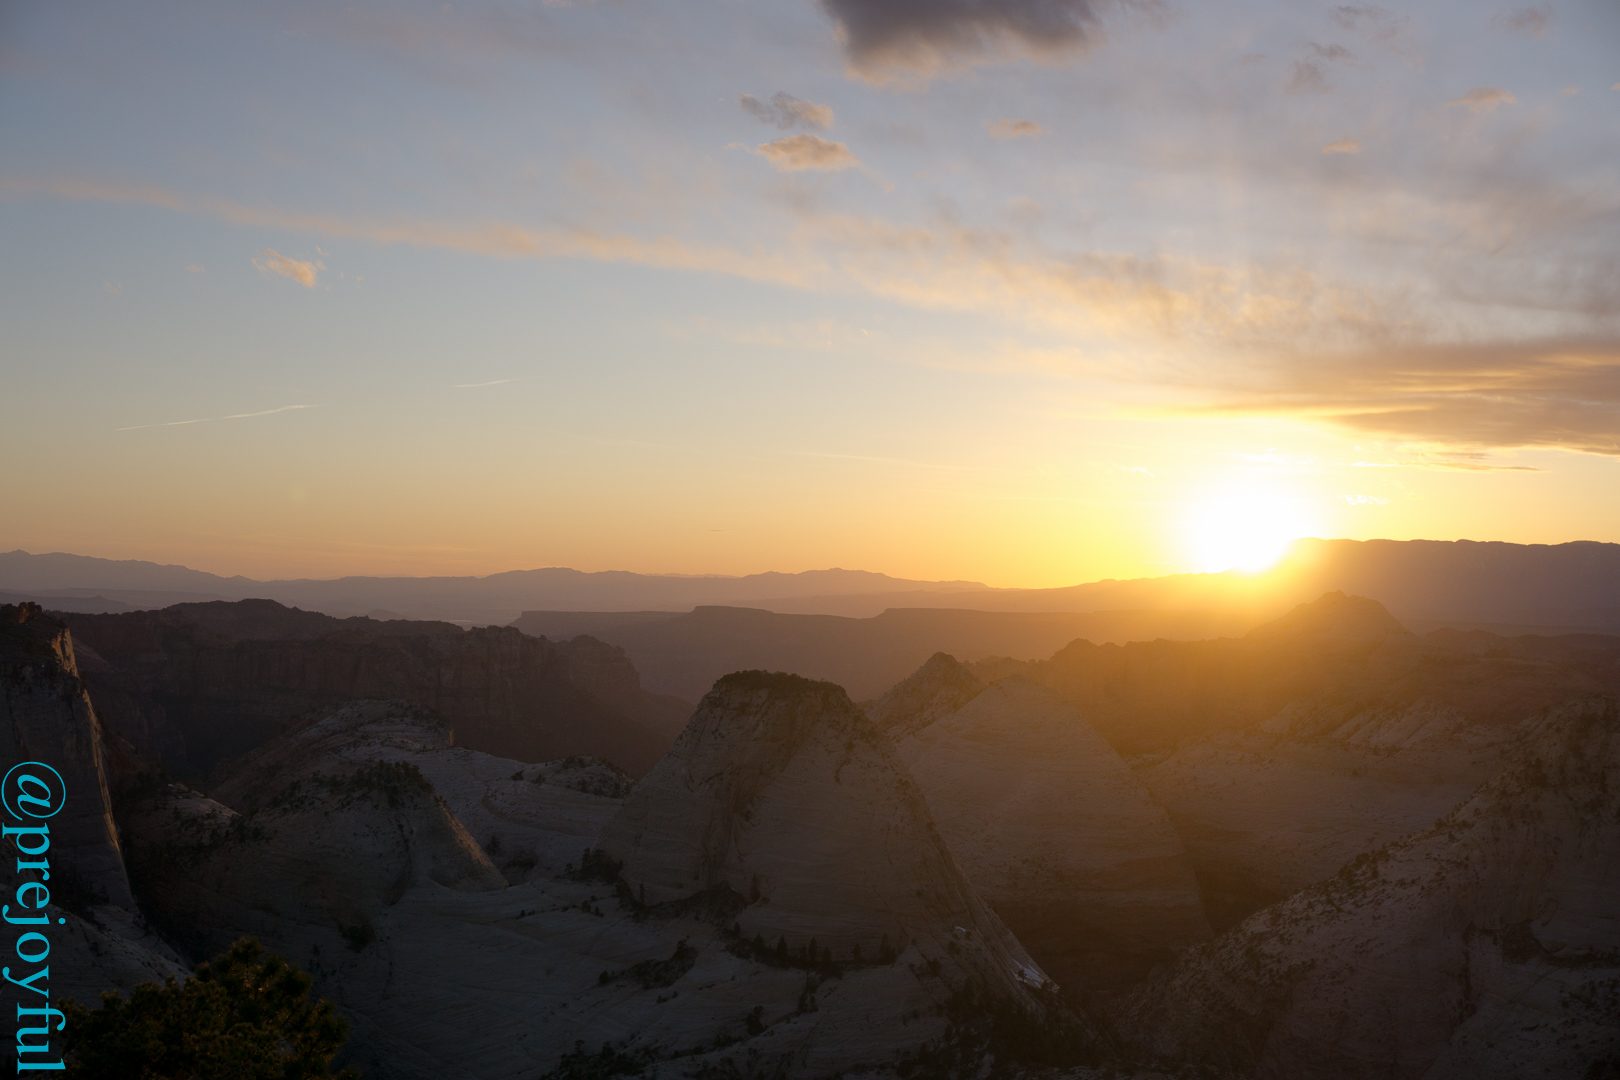 Sunset over the western canyons.